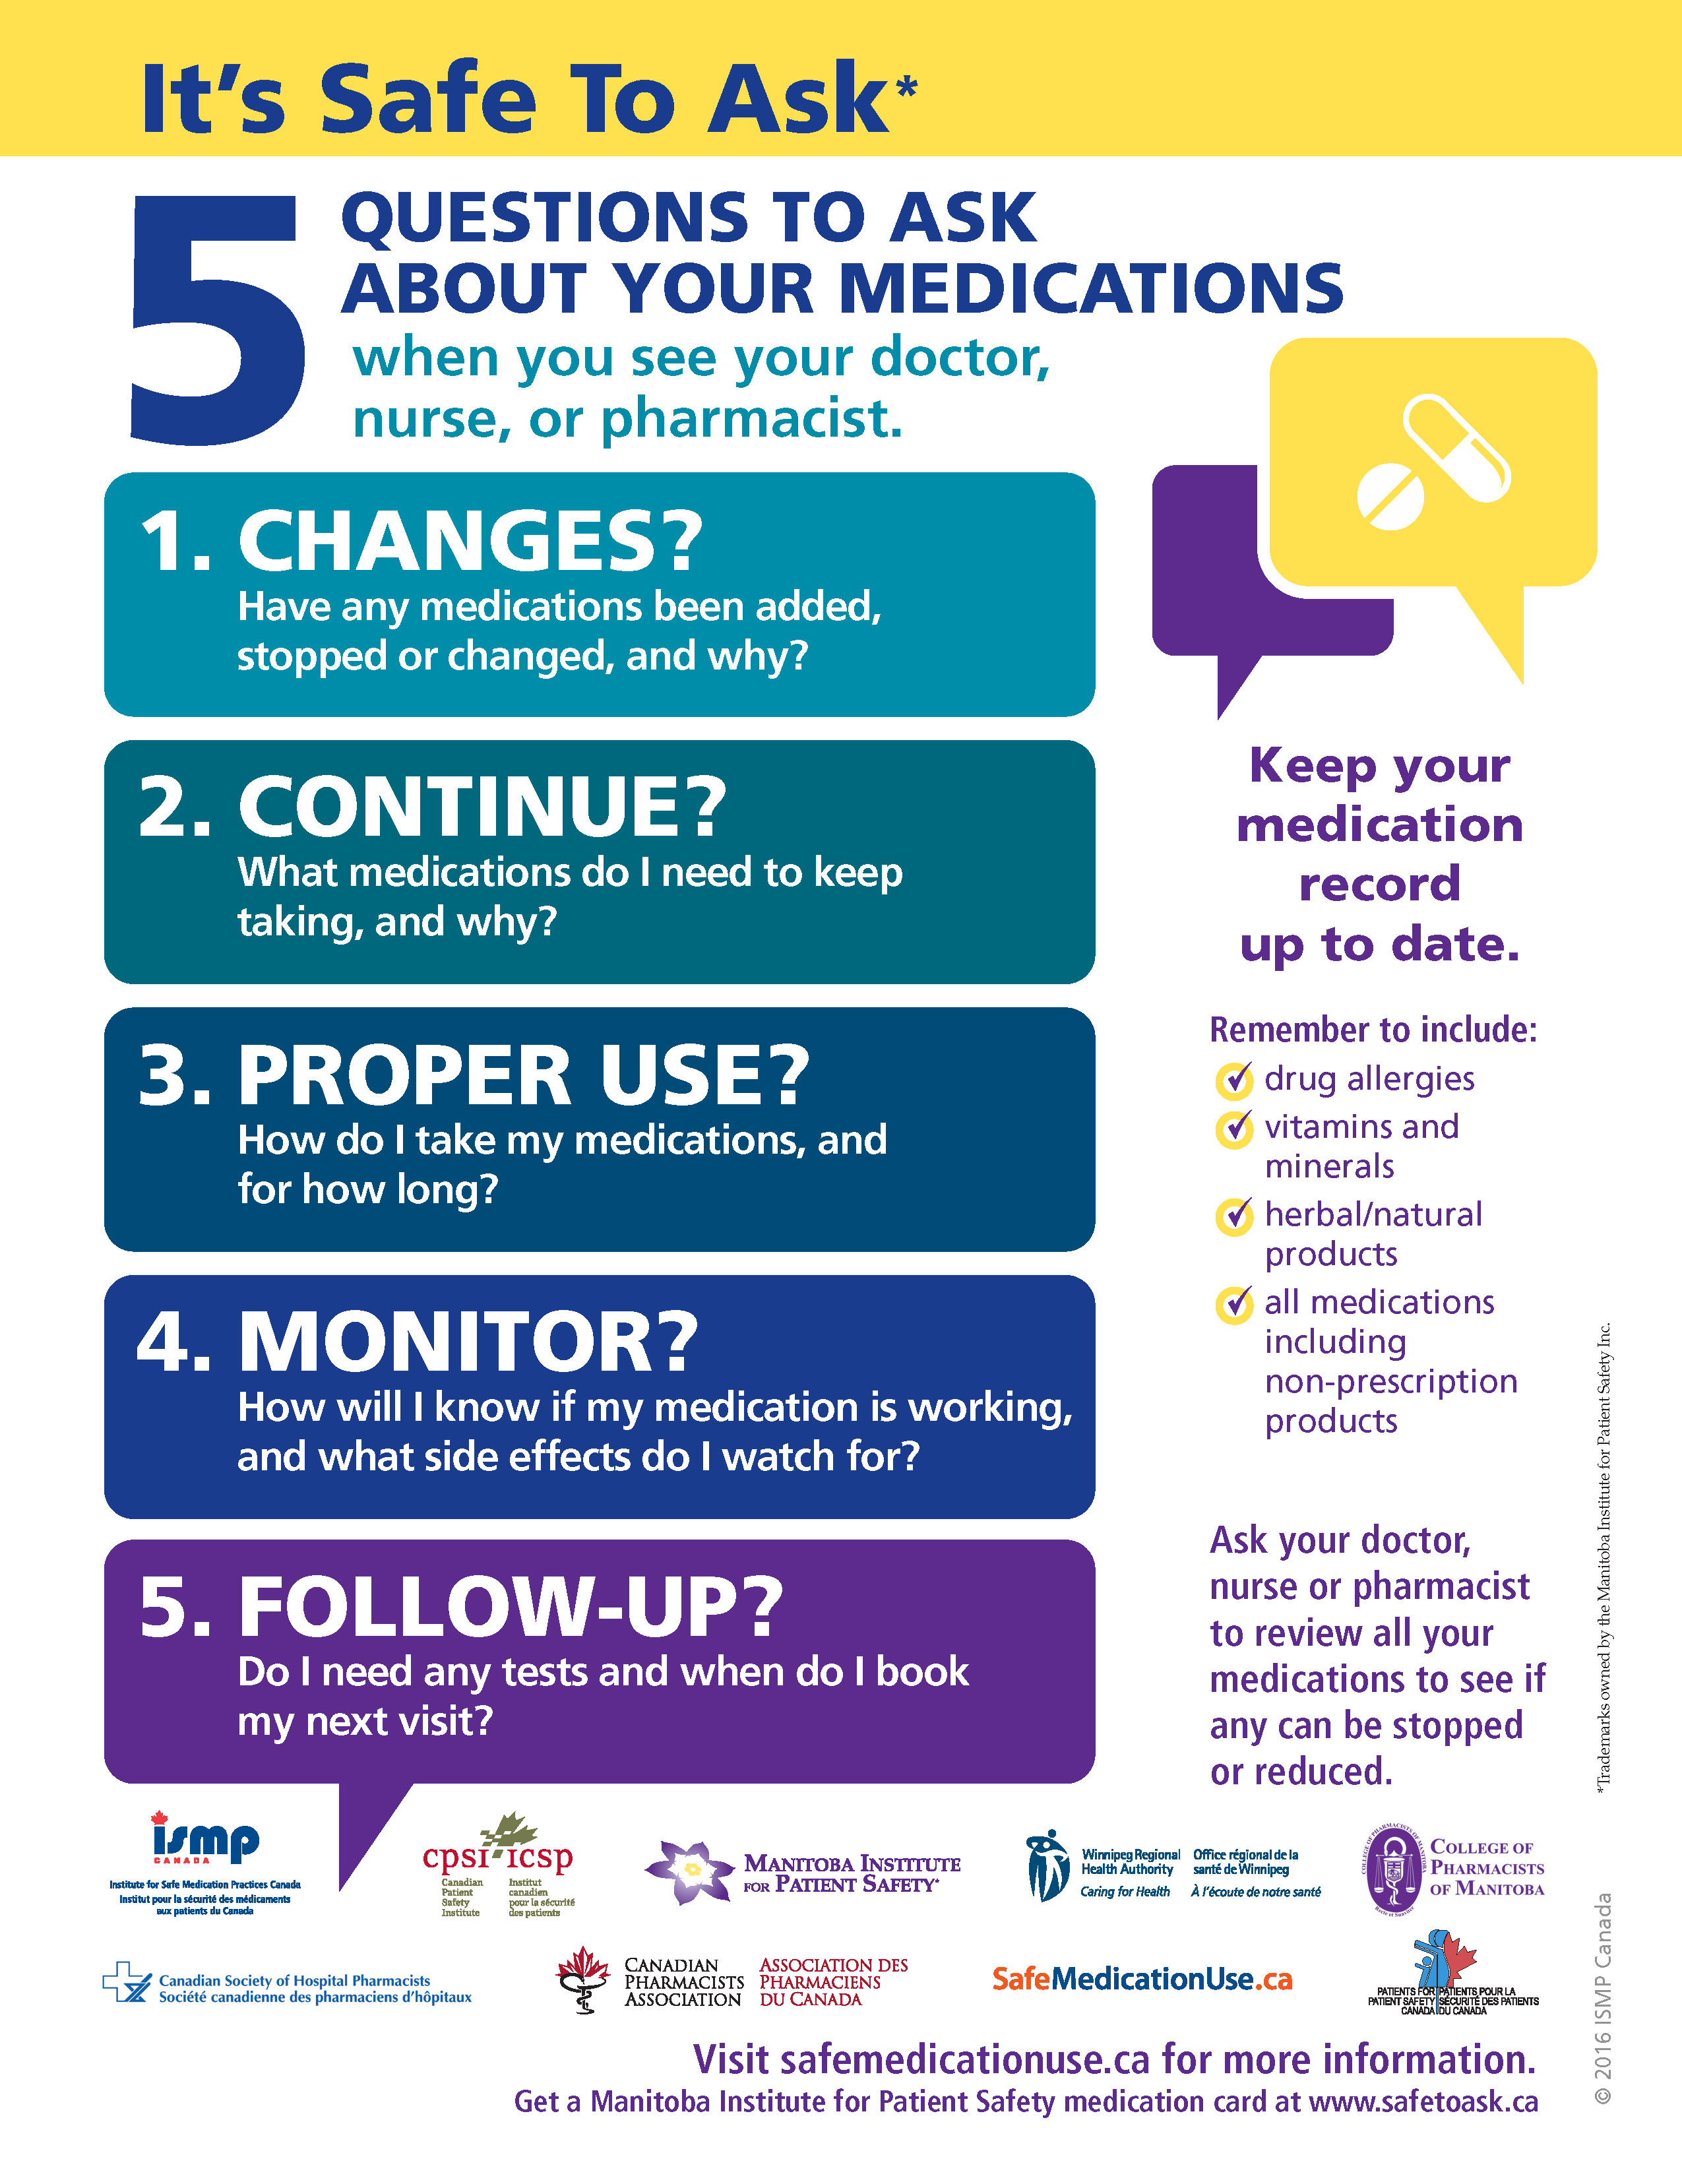 It's Safe to Ask questions about your medications. Here are 5 questions you should be asking.  #safetoask #medicationsafety #patientsafety #manitobainstituteforpatientsafety